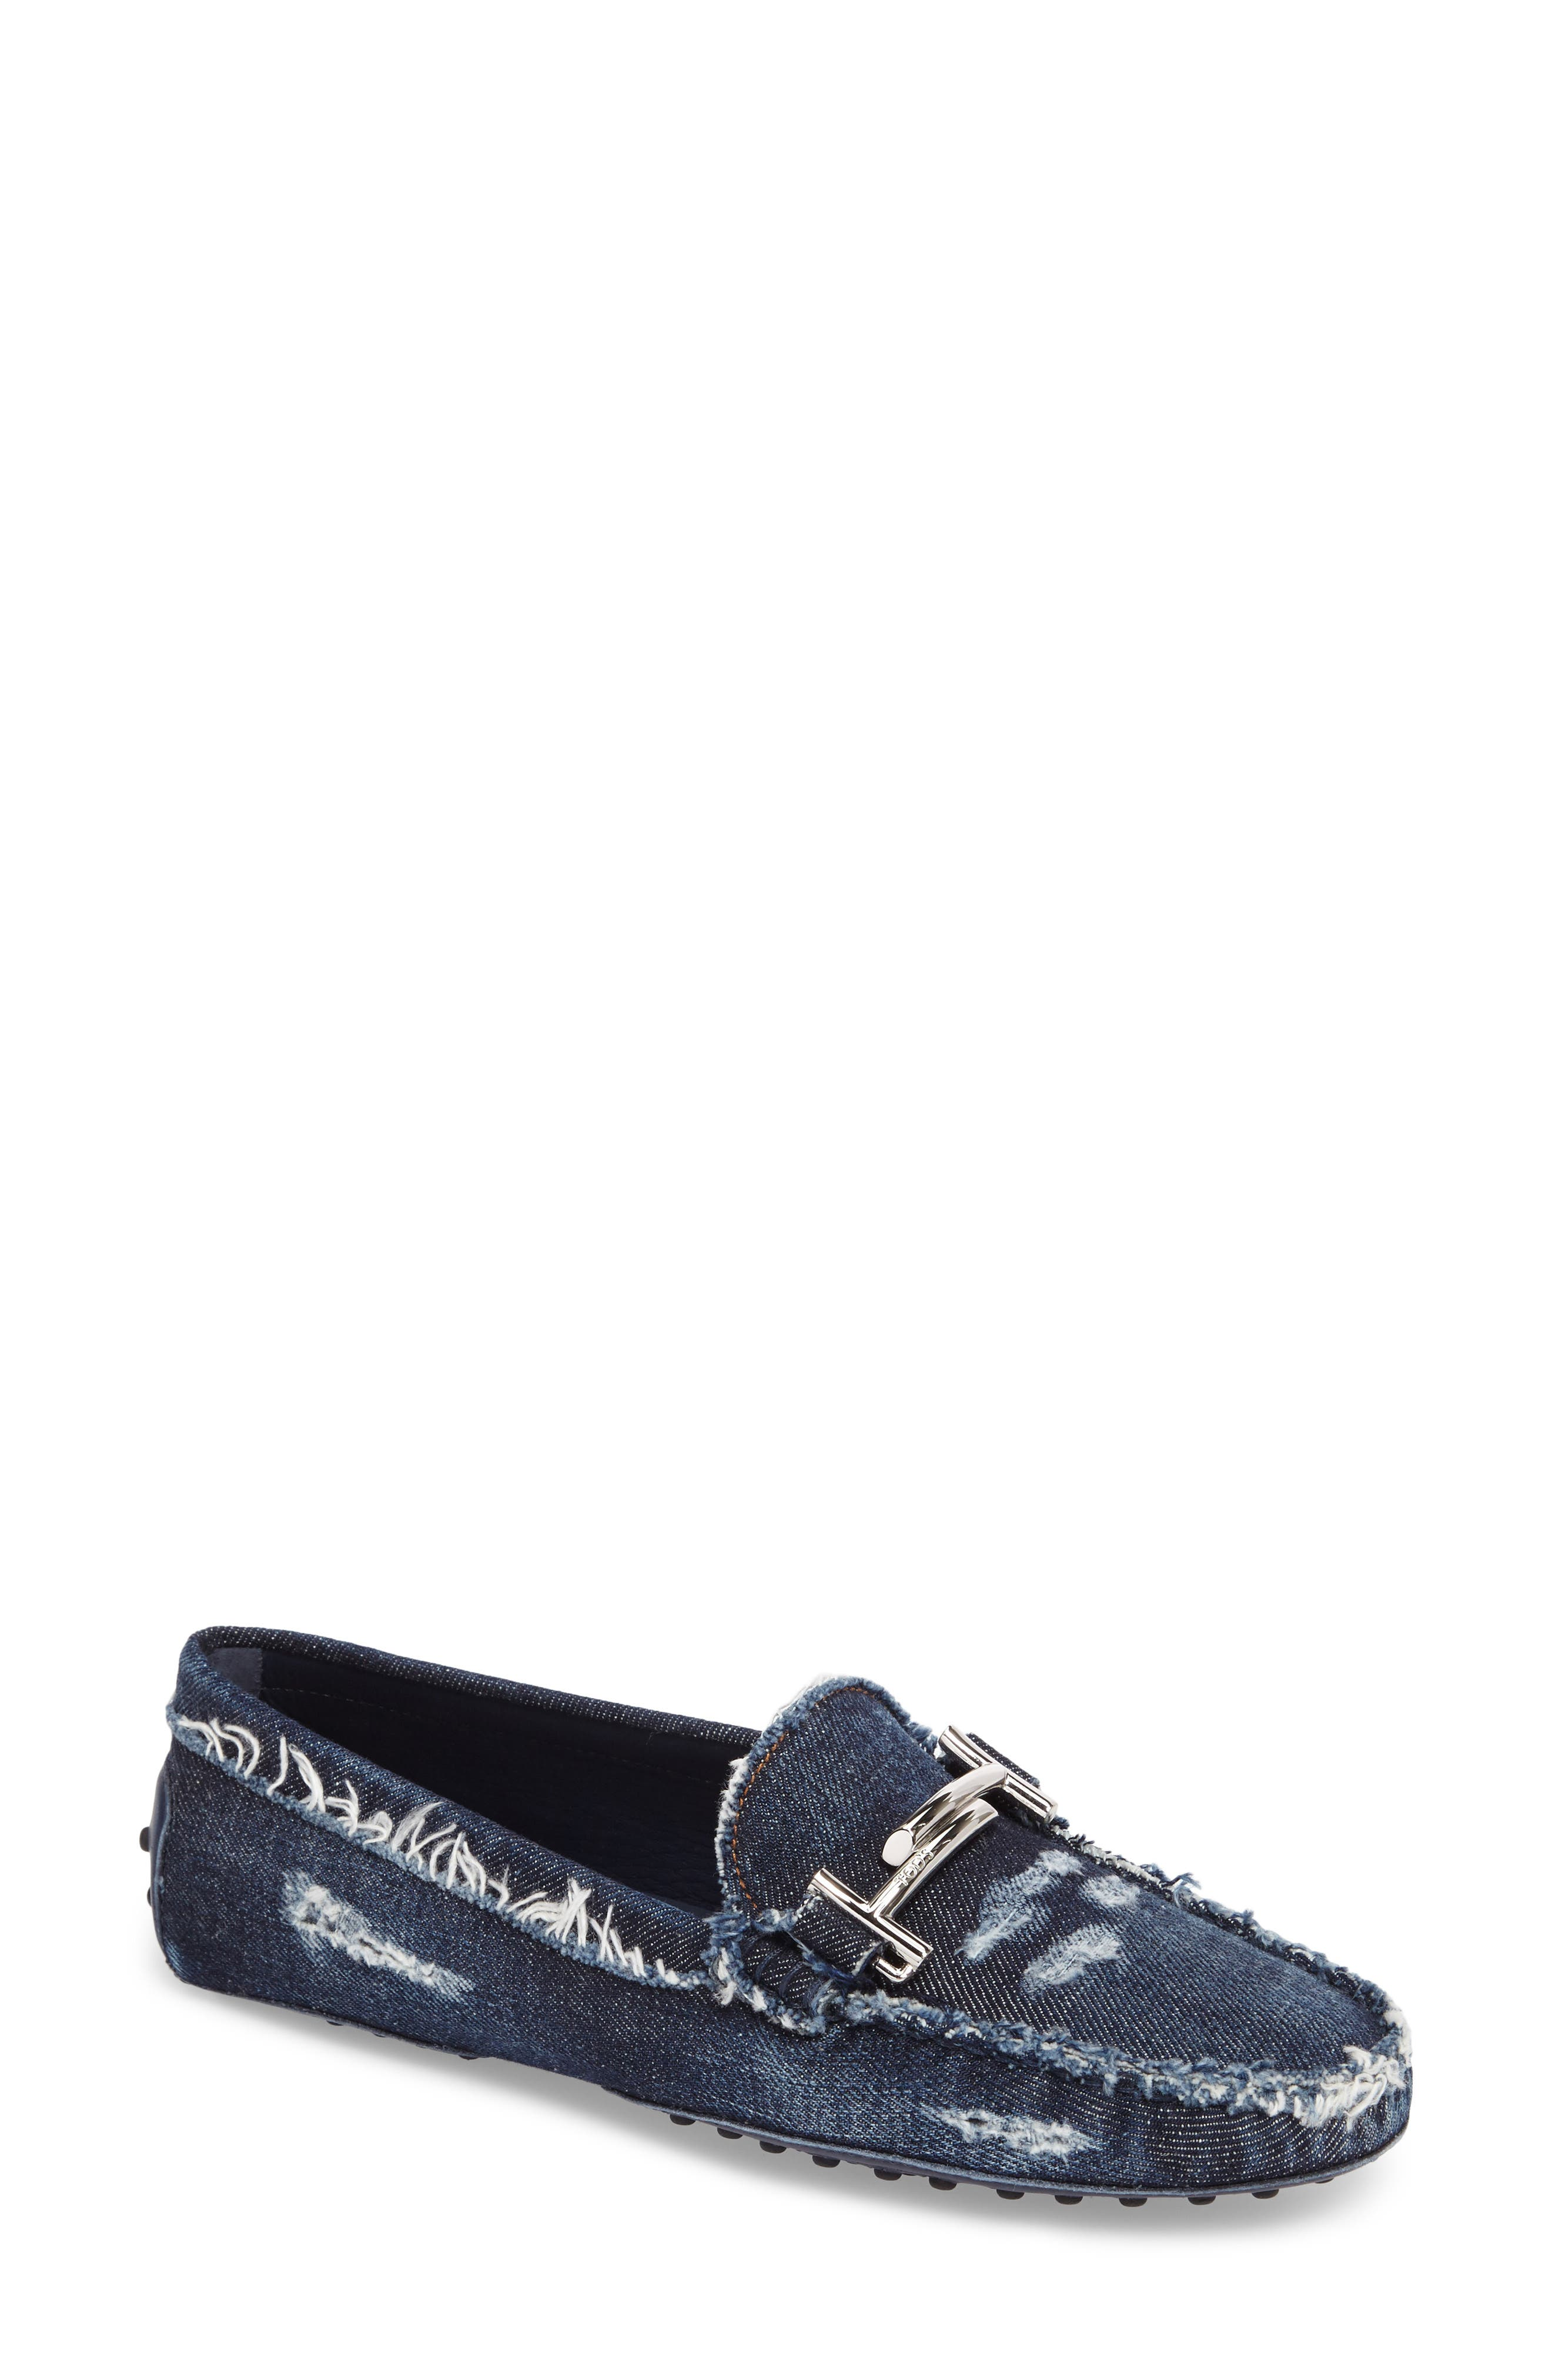 Gommino Double T Loafer,                         Main,                         color,